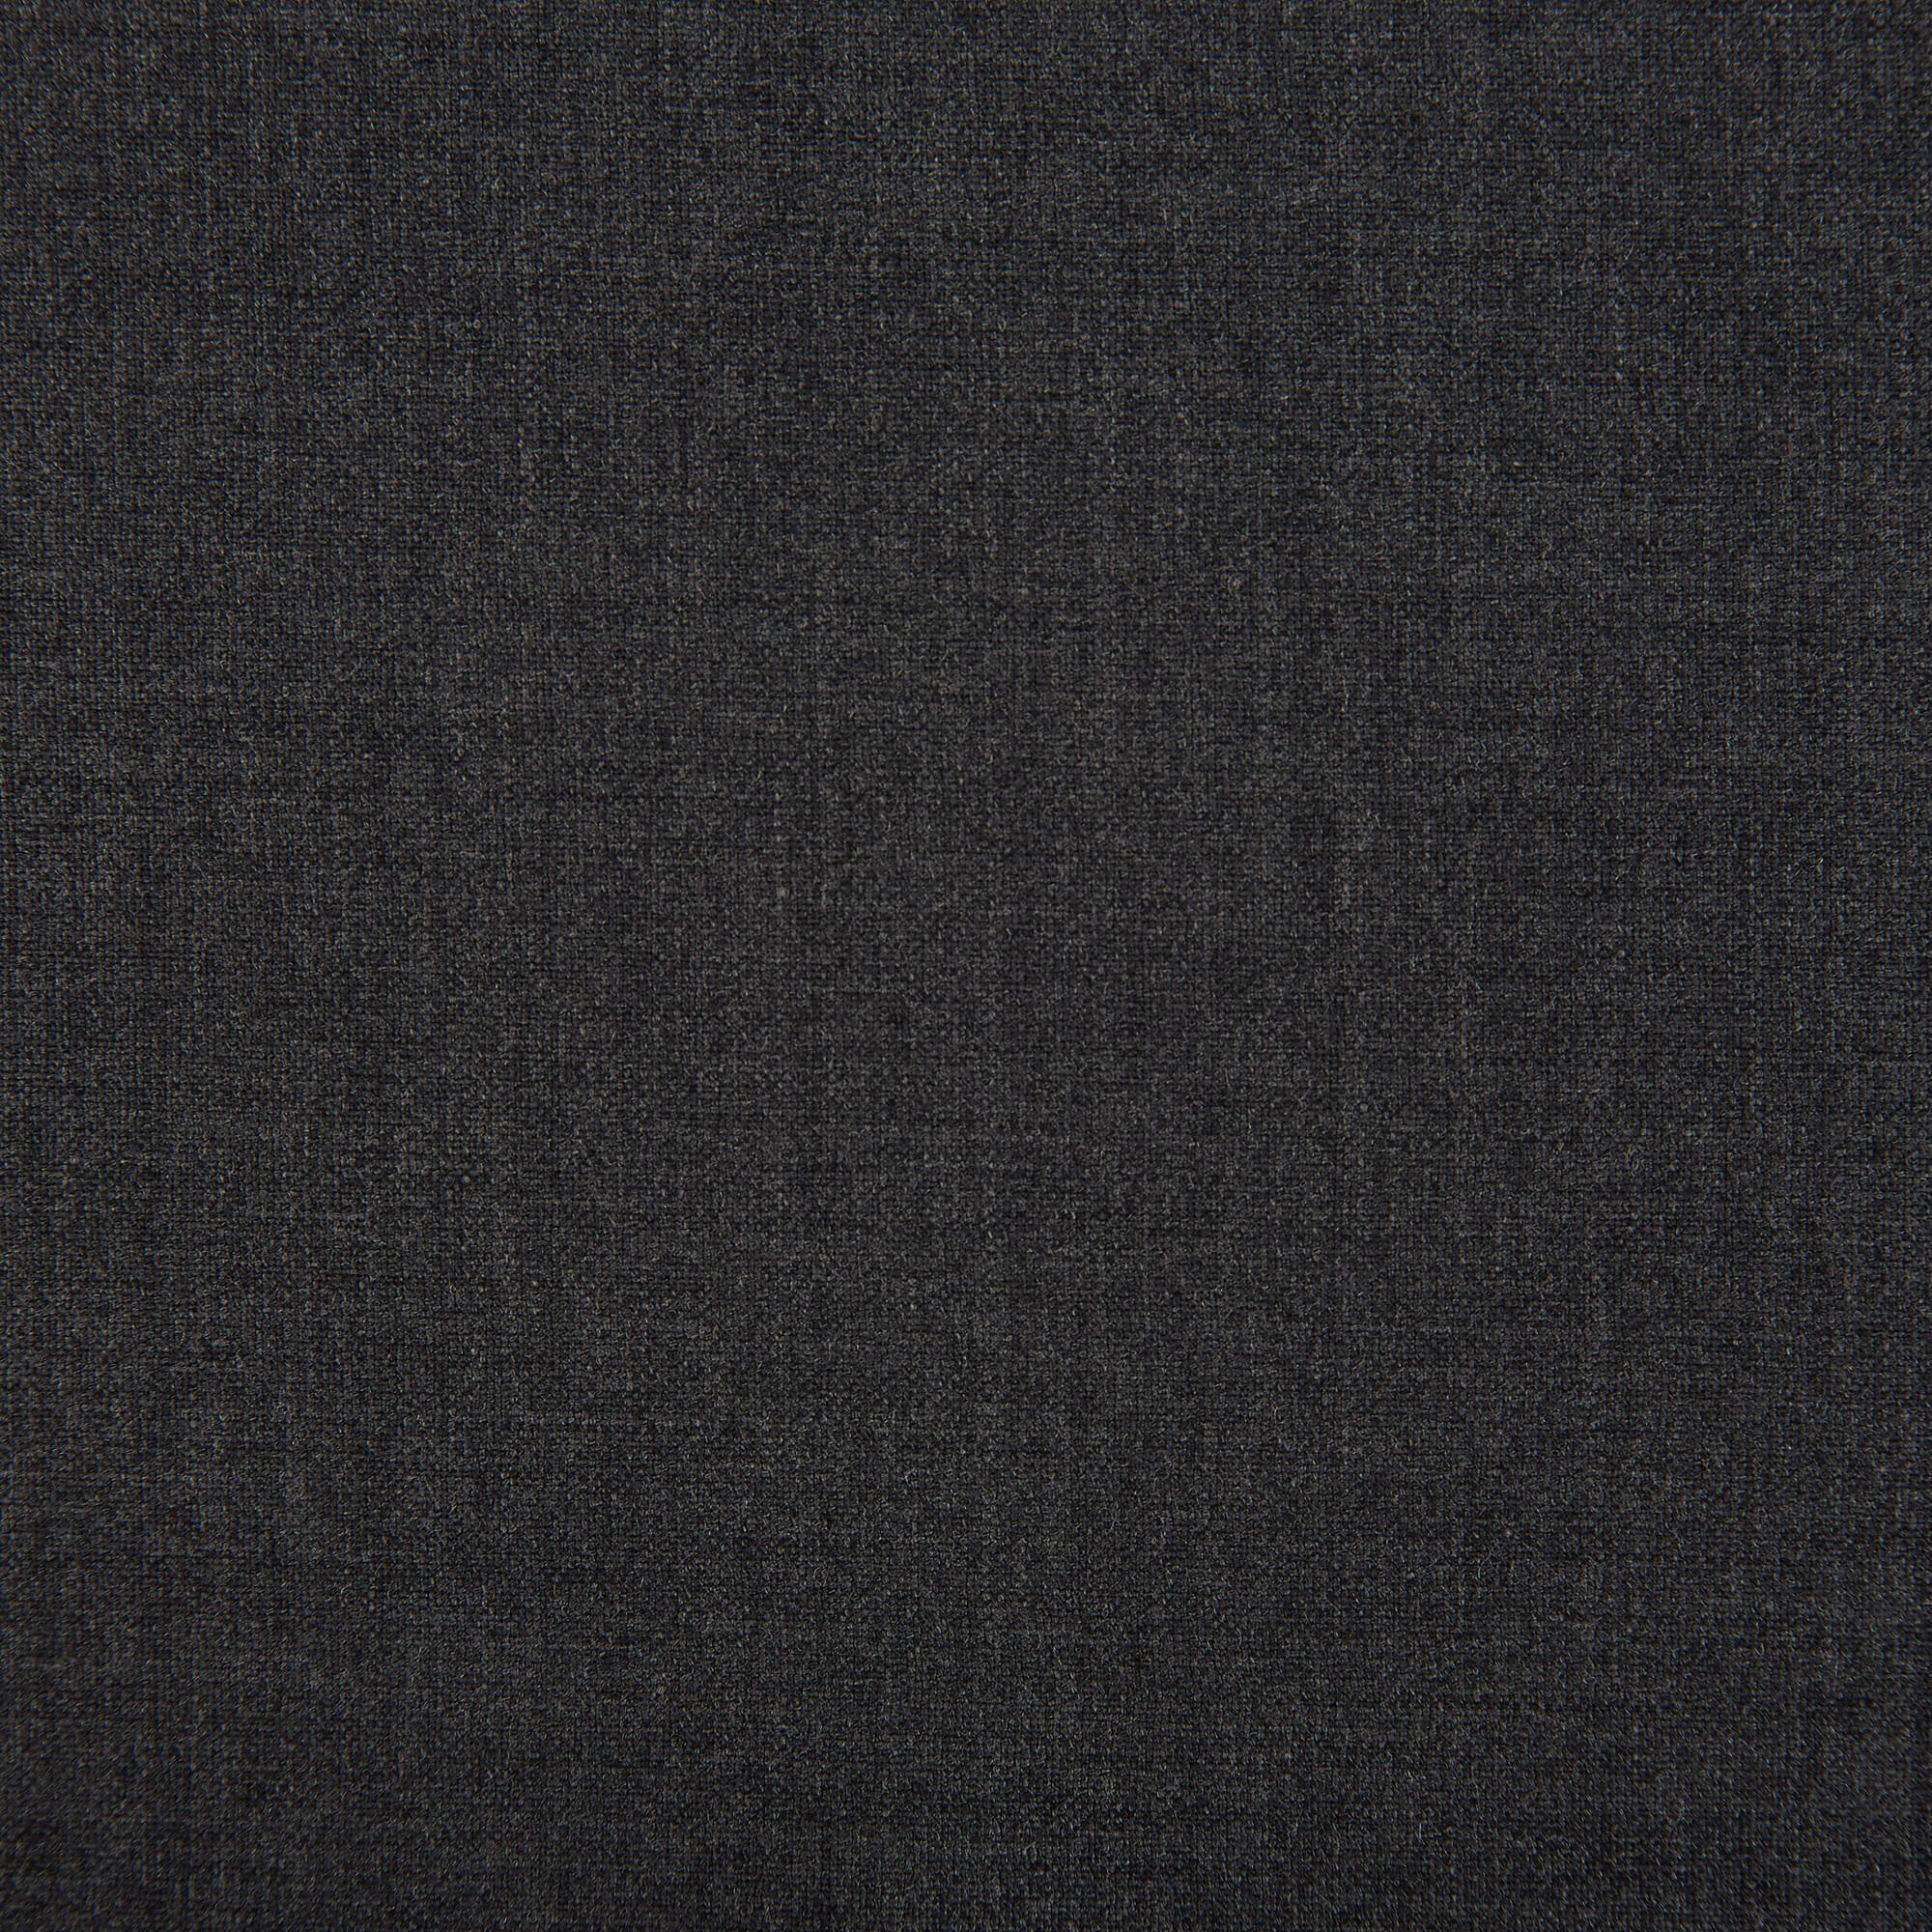 100% plain wool fabric